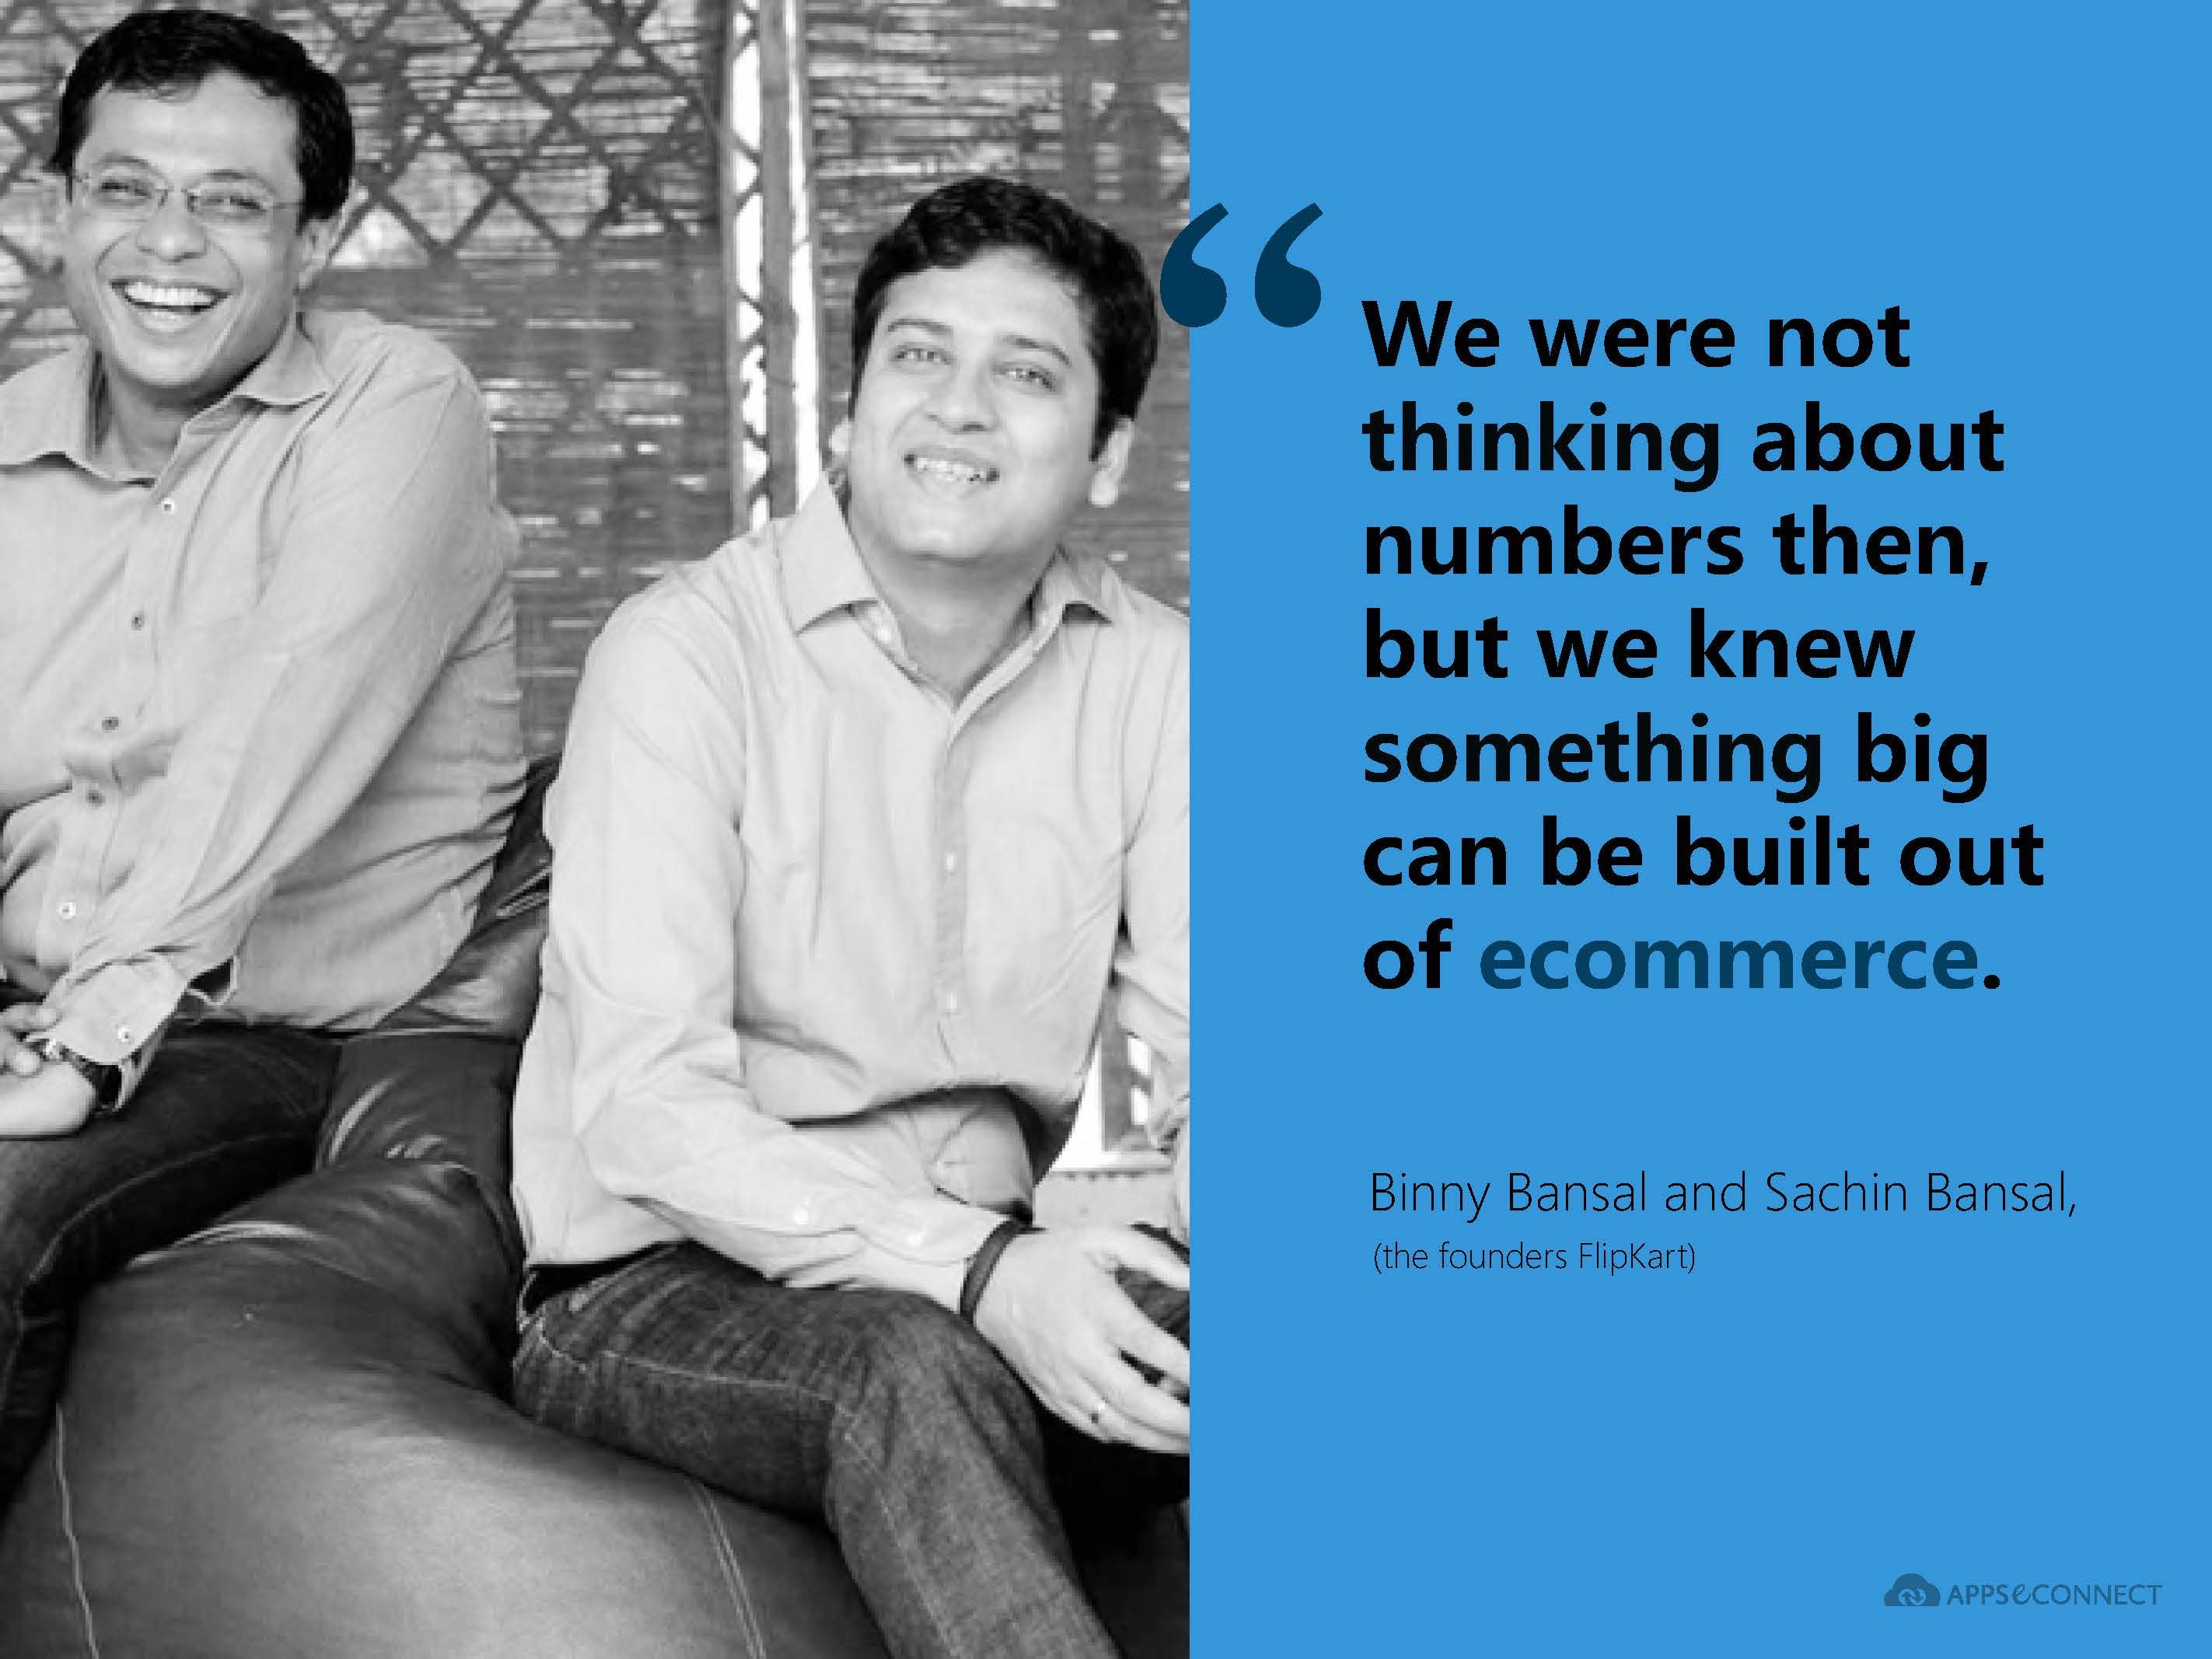 Quotes from binnybansal and sachinbansal founder flipkart